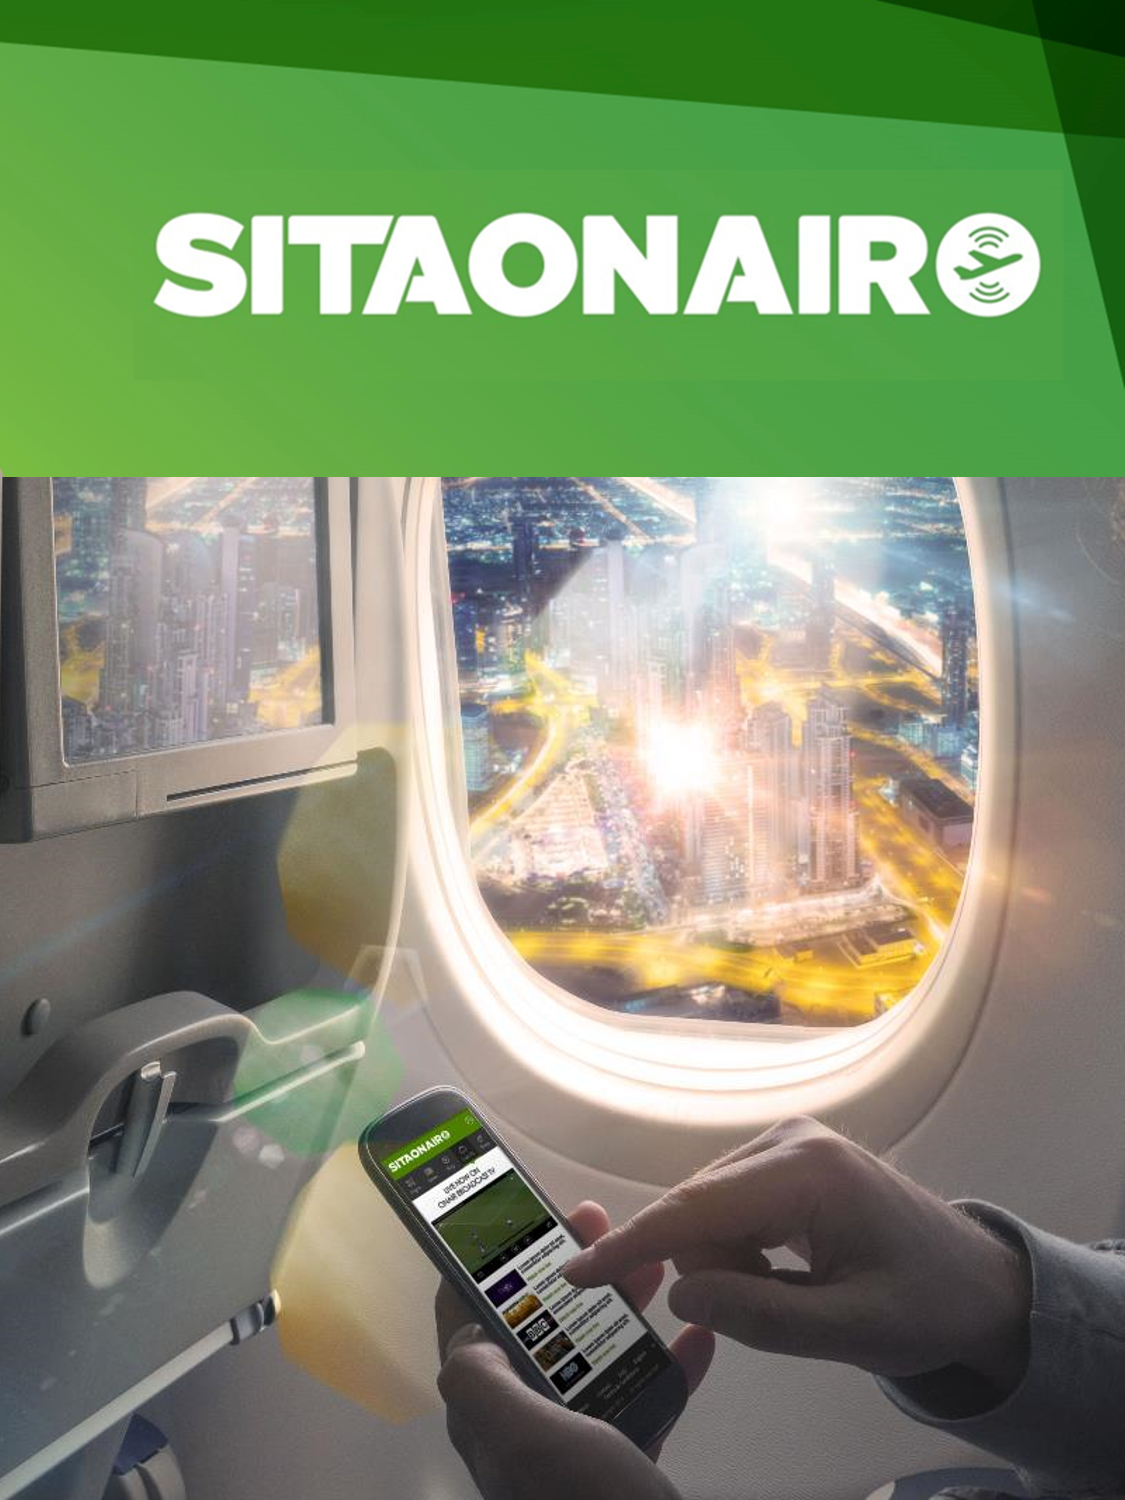 SITAONAIR-image-for-AIM-web-release-3.png